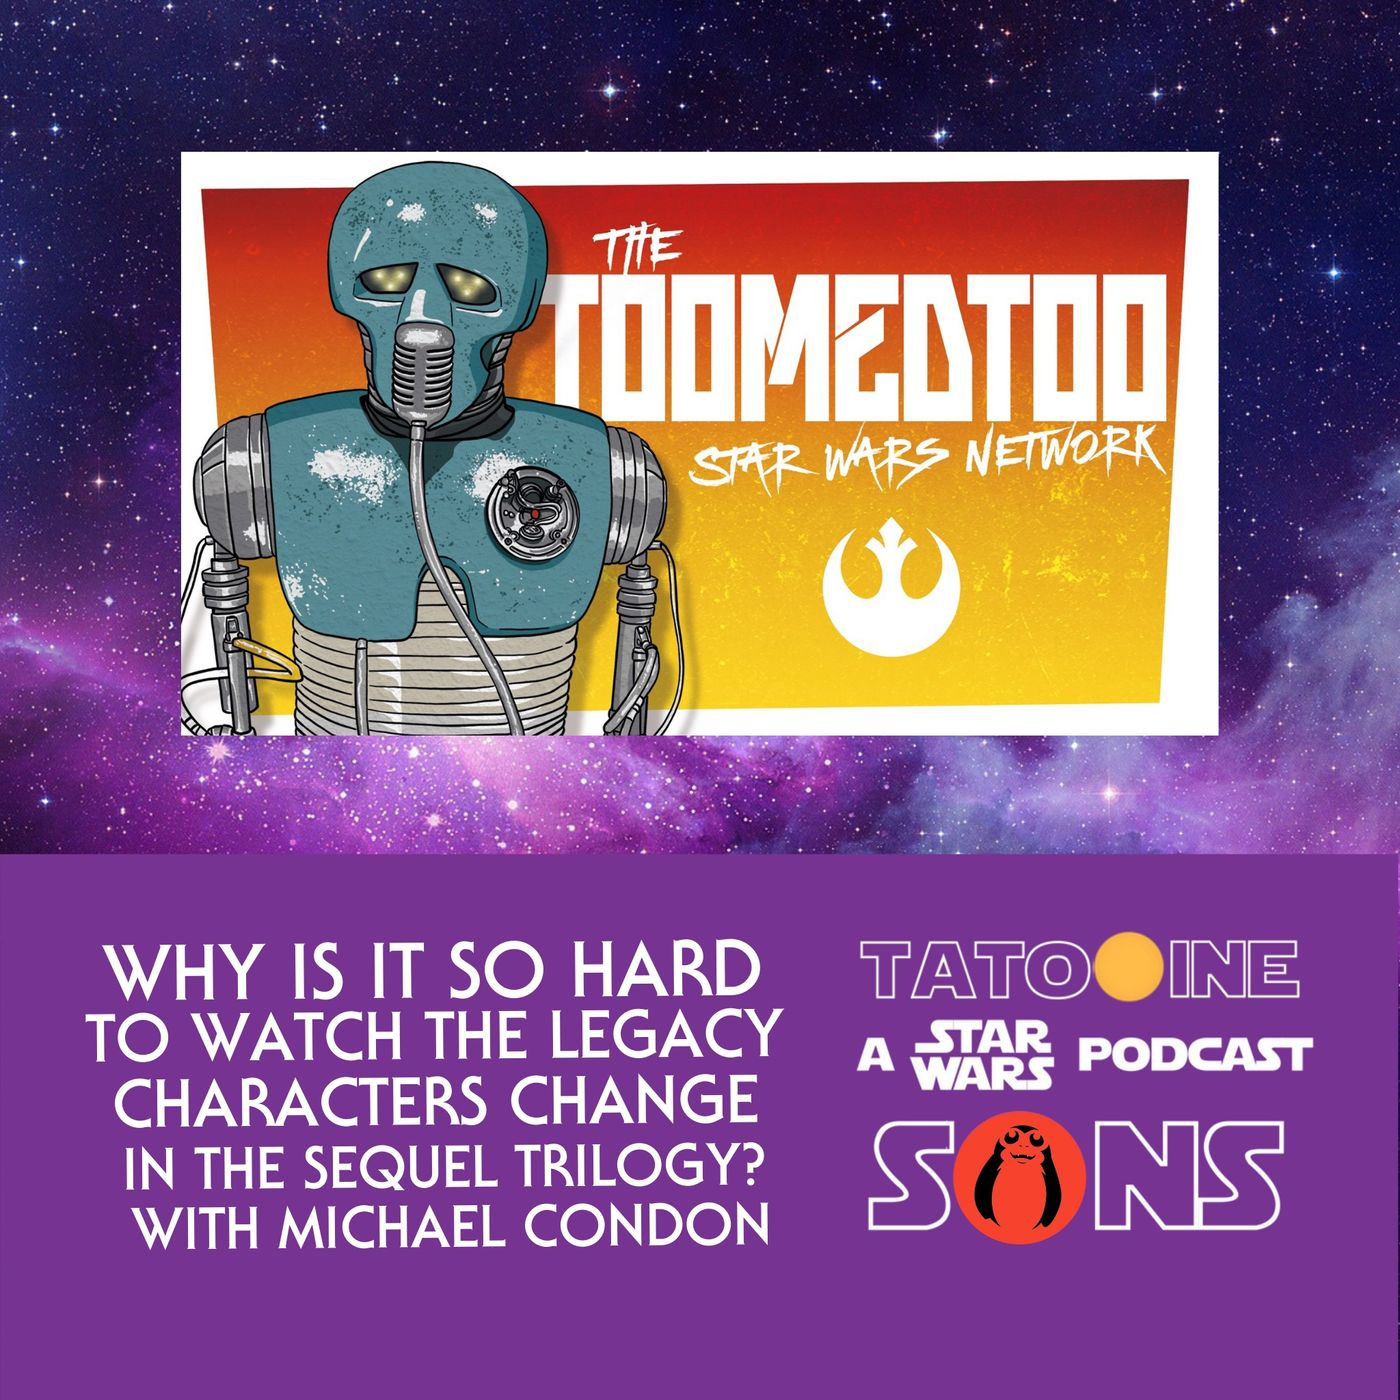 Why Is It So Hard To Watch the Legacy Characters Change in the Sequel Trilogy (with Michael Condon of the TooMedToo Star Wars Network)